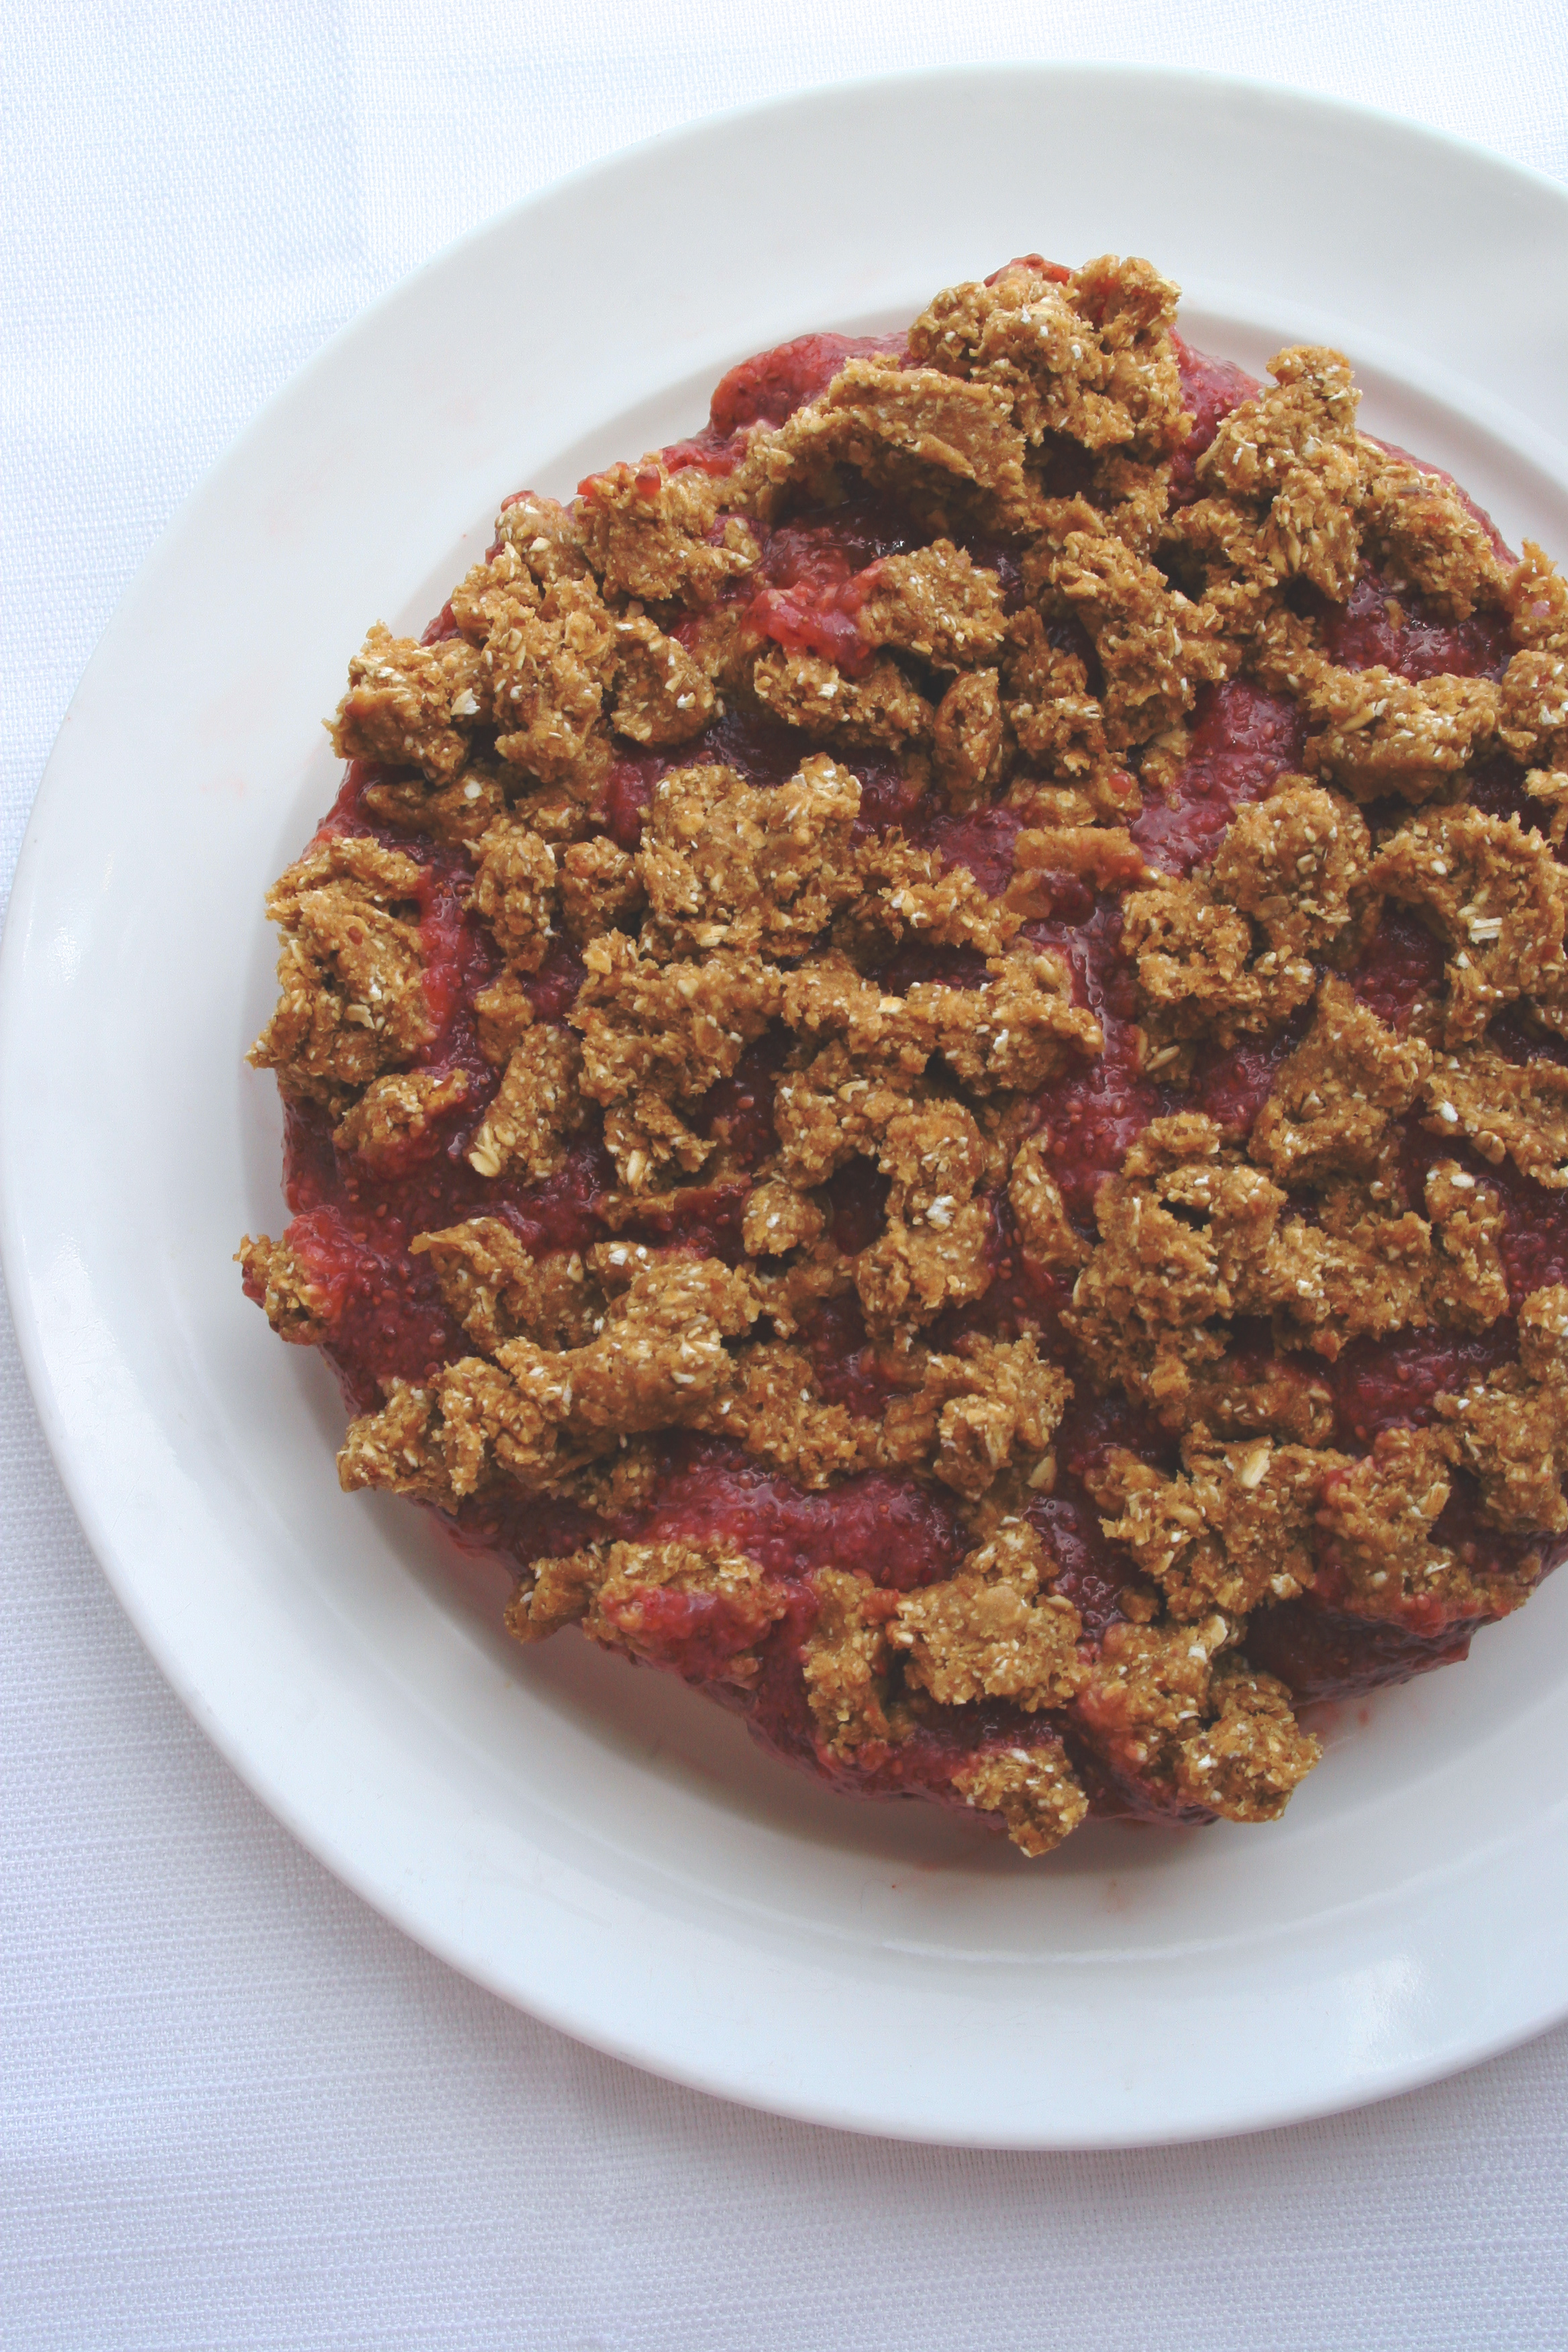 peanut butter & strawberry jam crumble cake // completely raw, vegan, gluten-free, & refined sugar free